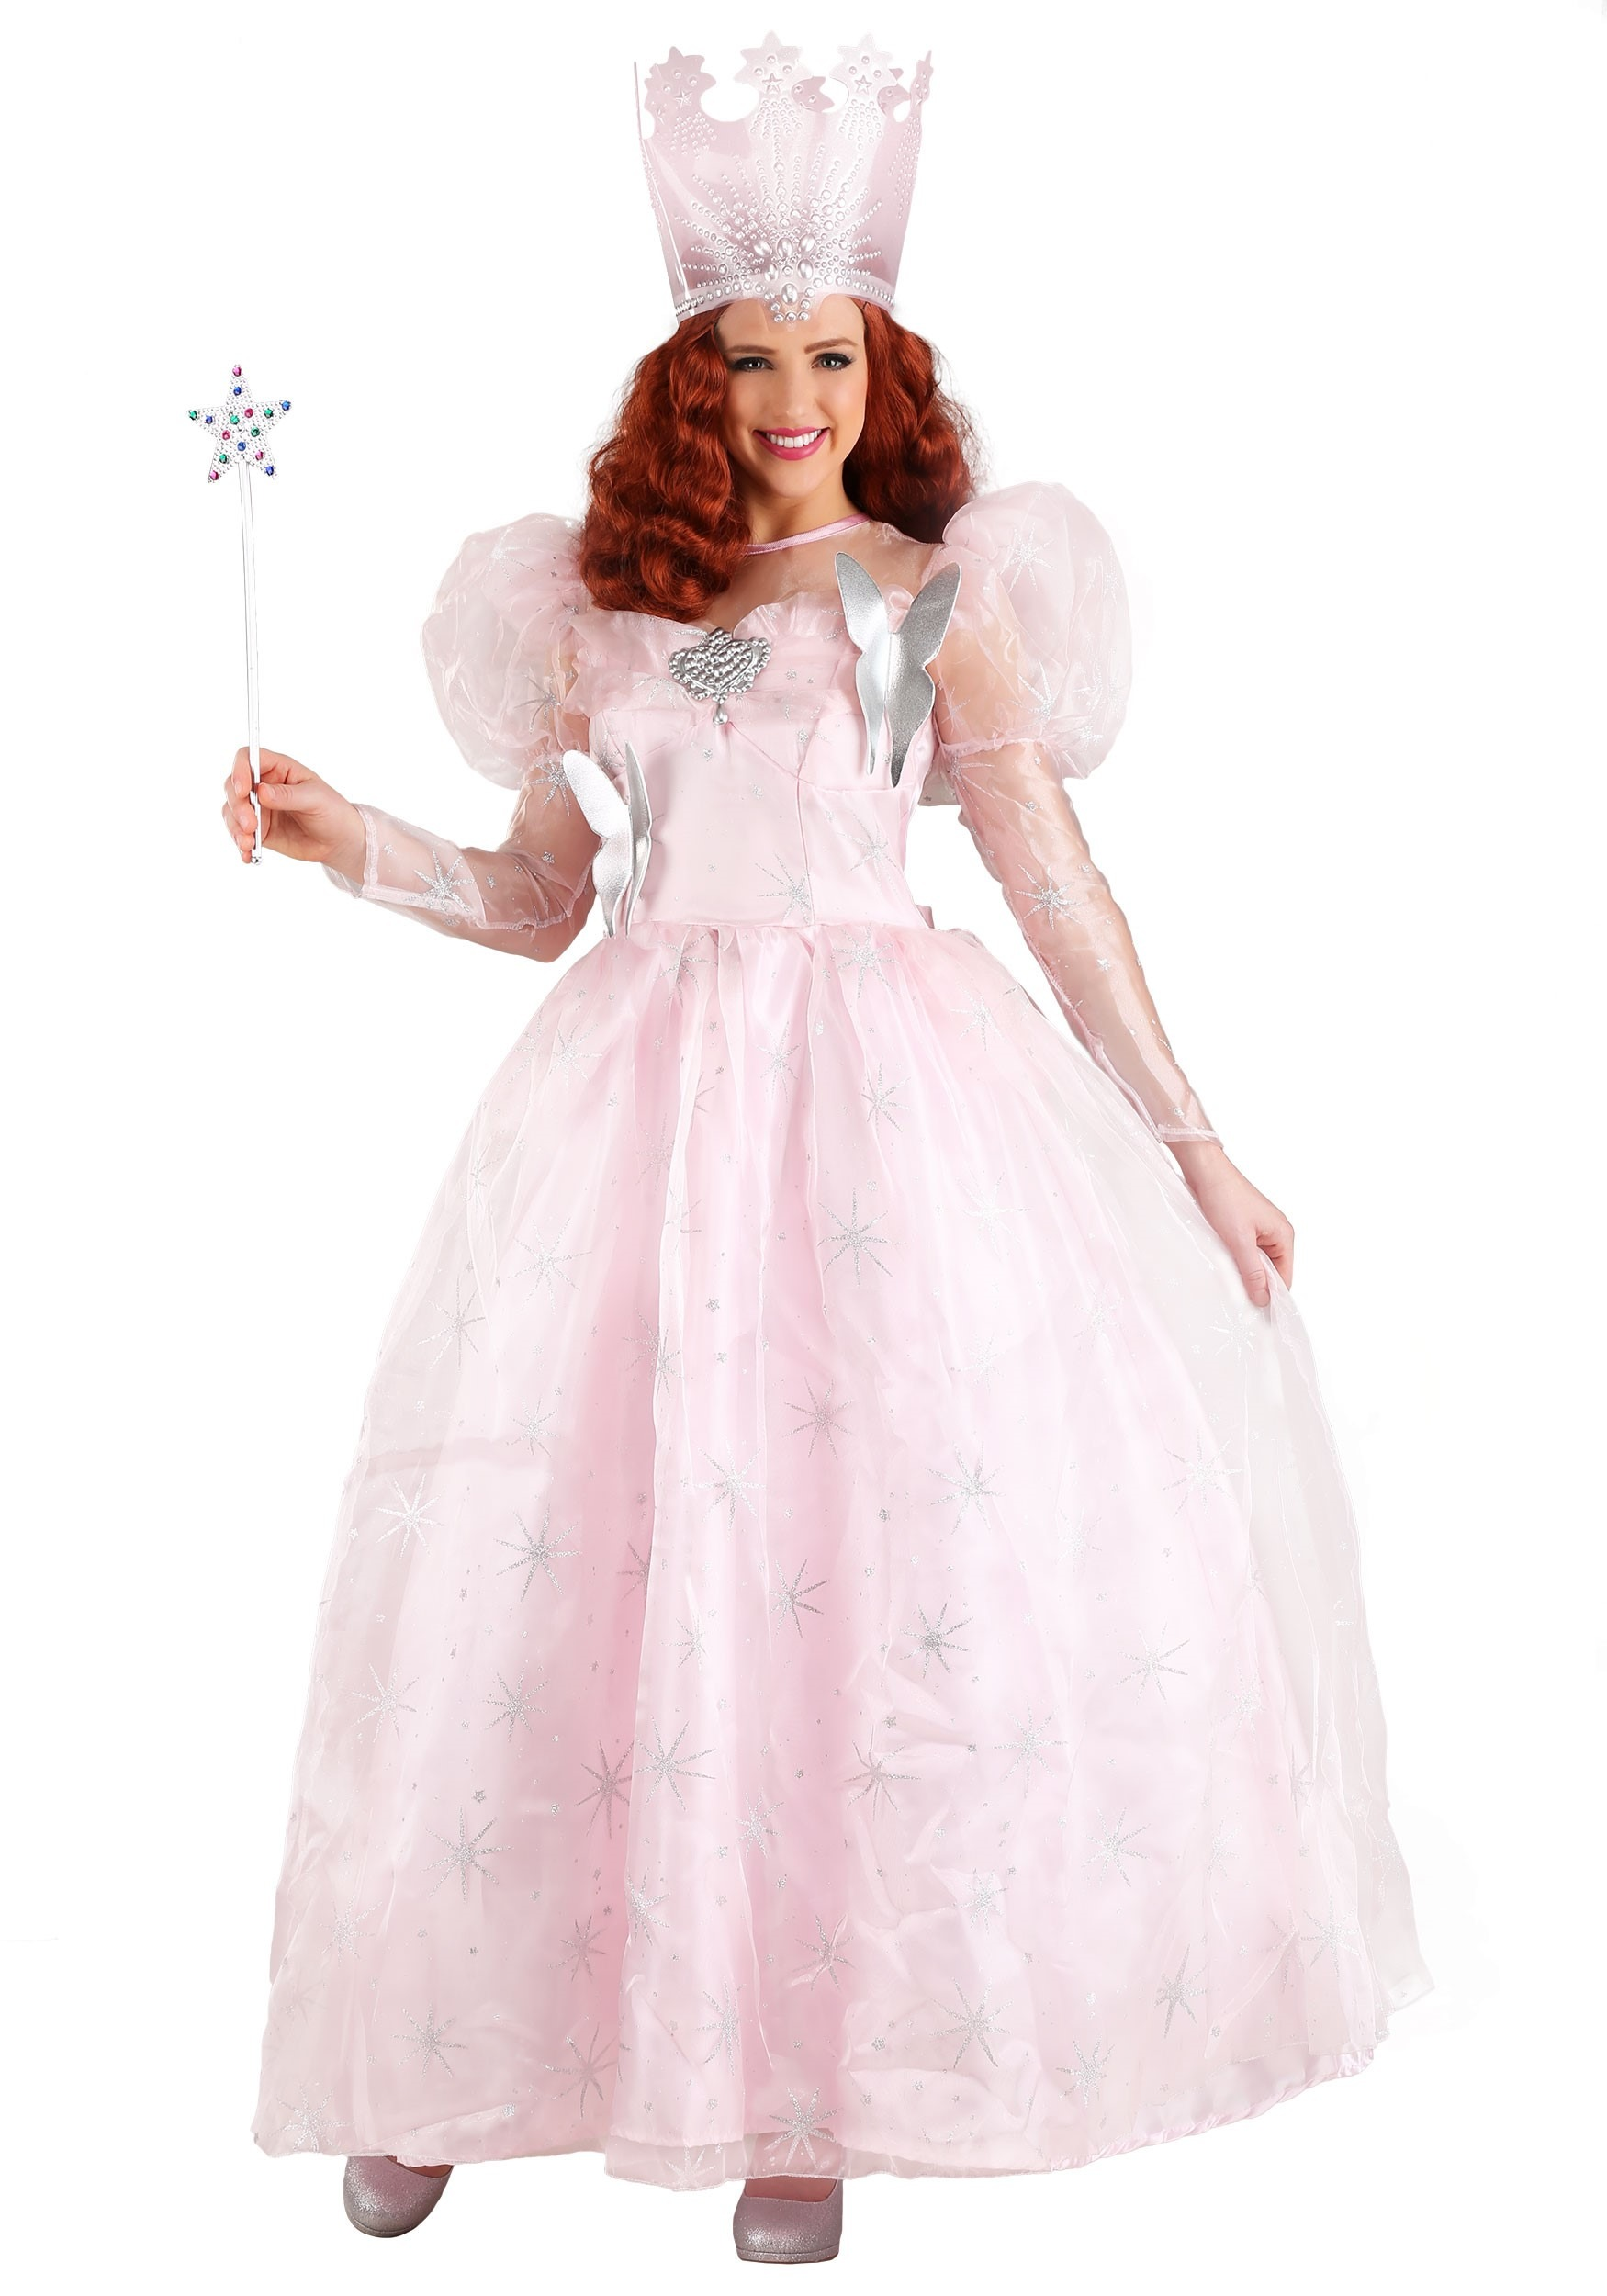 Glinda the Good Witch Costume - Glinda Costumes